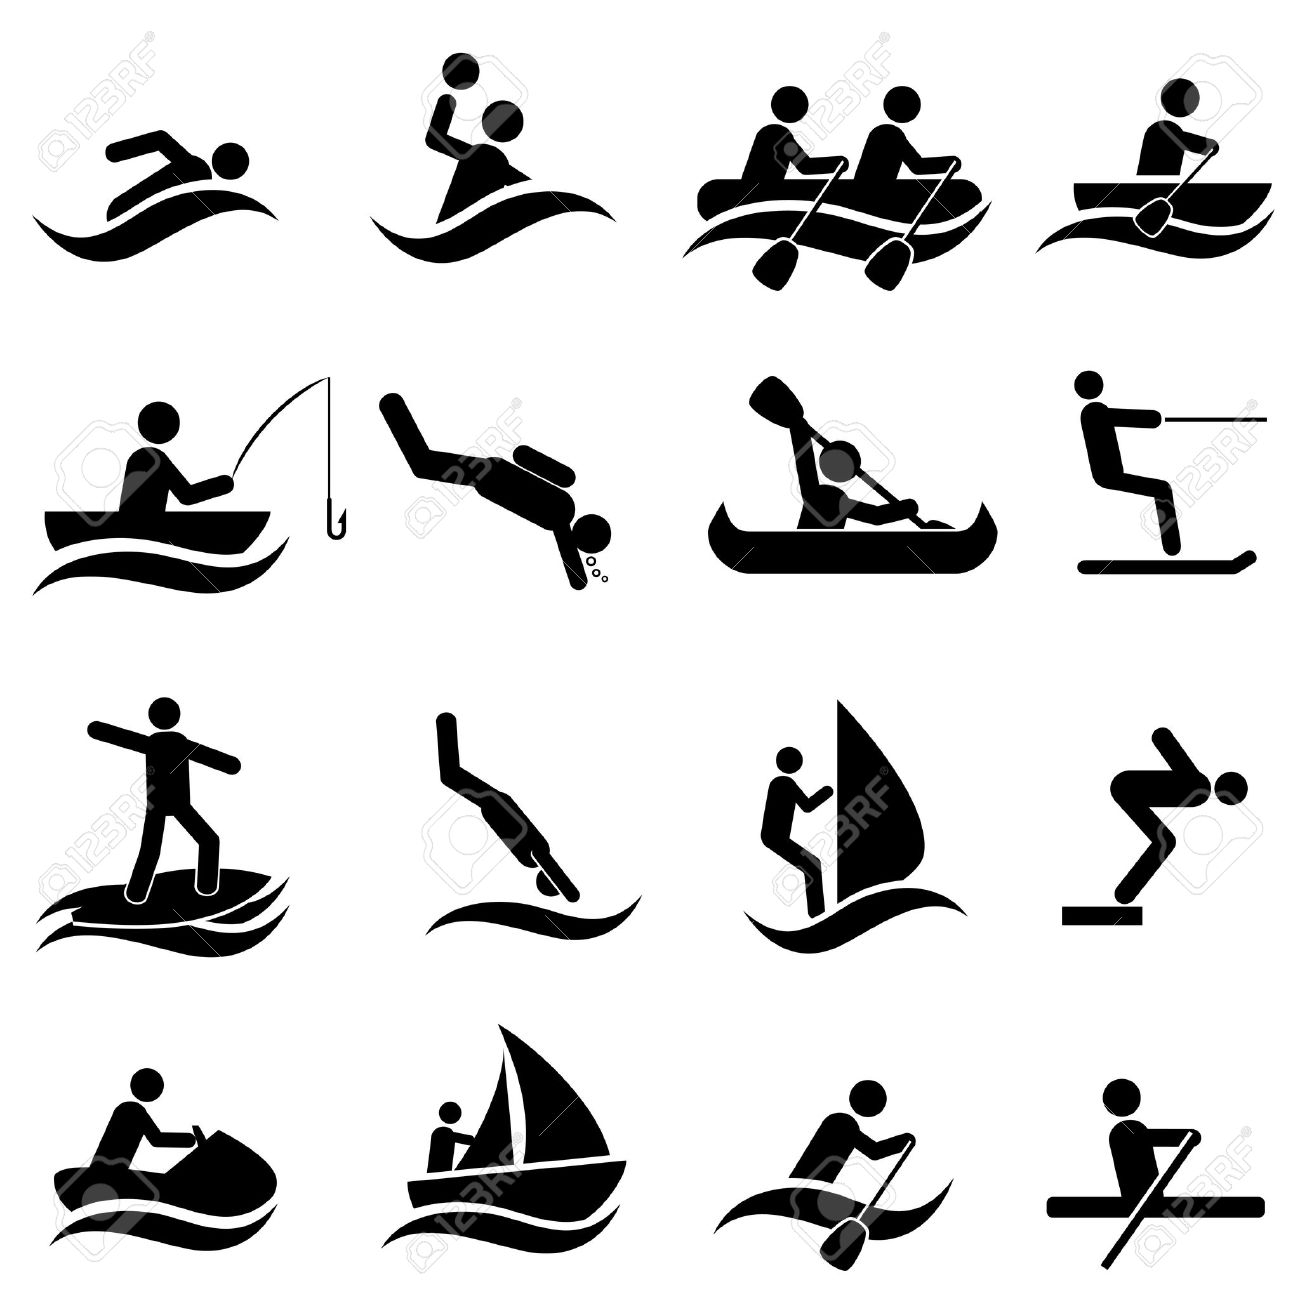 Water sports icon set in black - 20864008